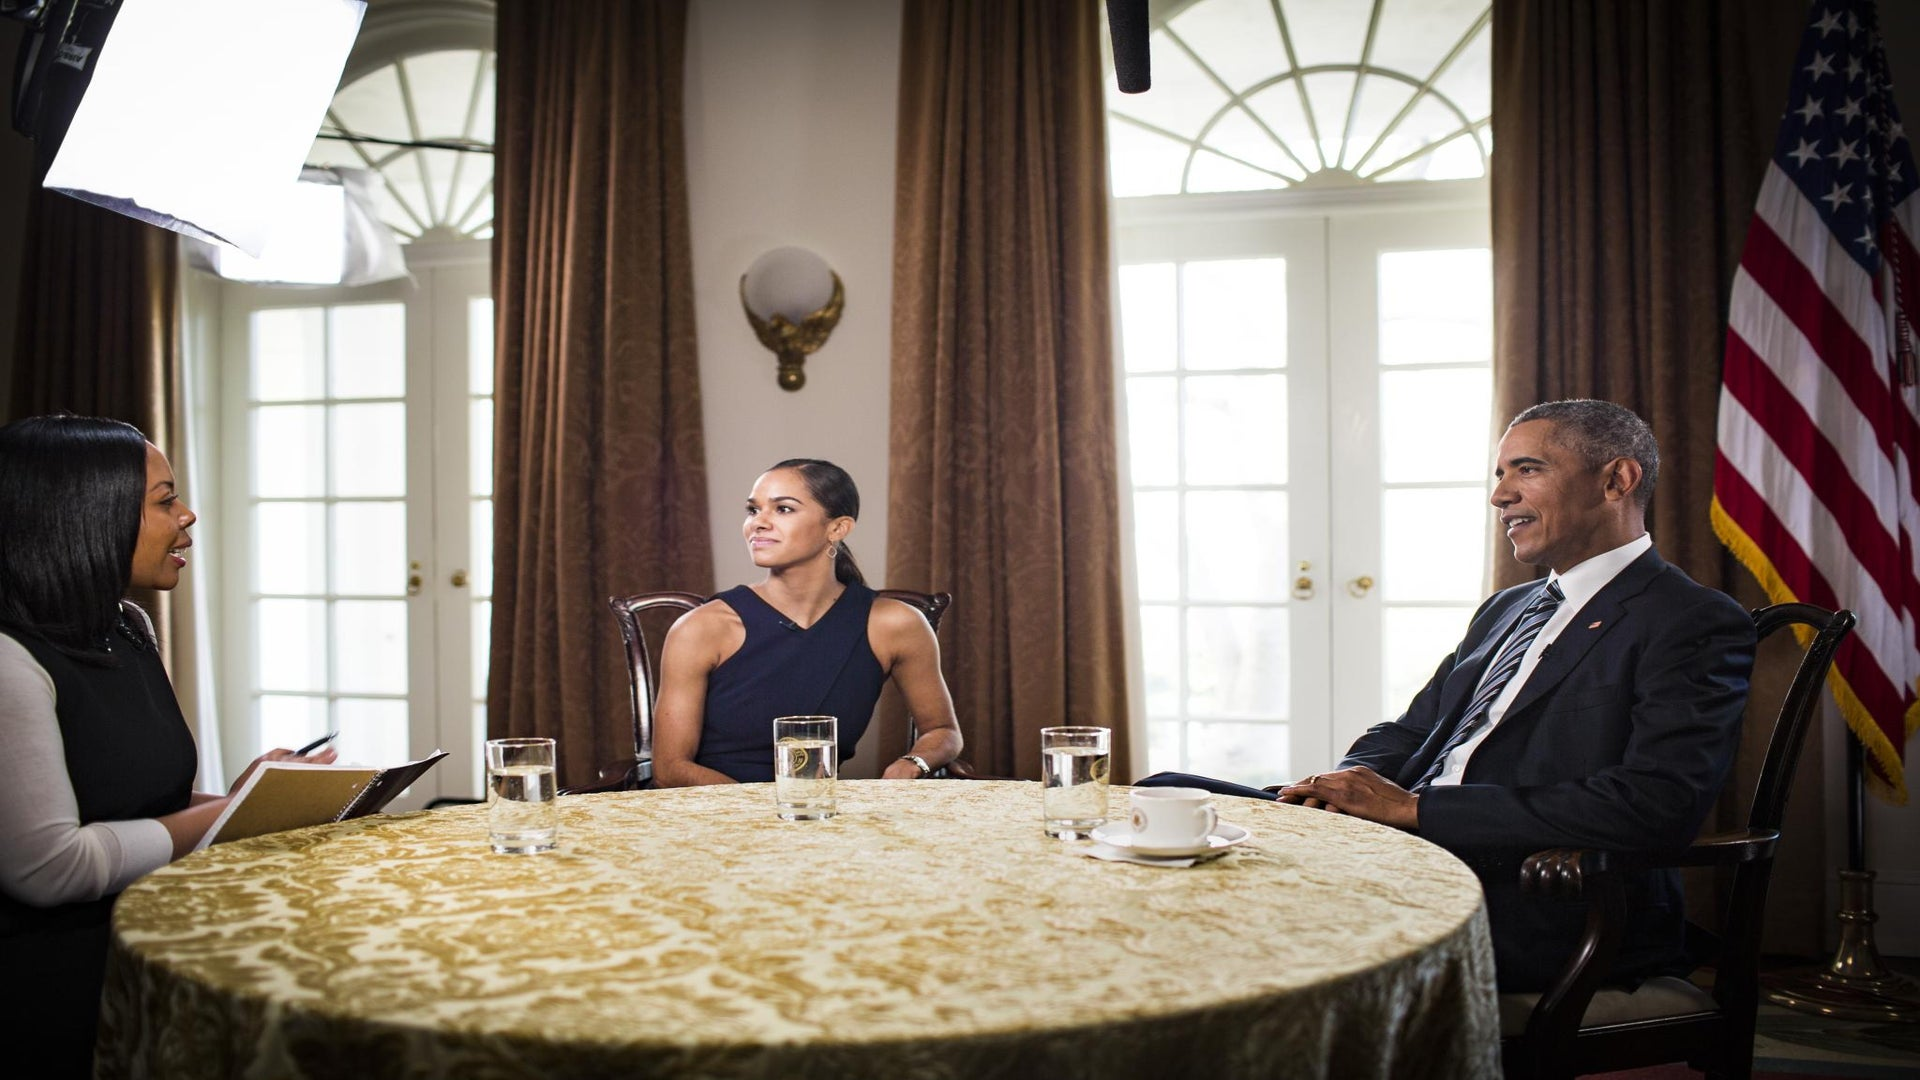 President Obama and Misty Copeland on the Lessons They've Learned About Race